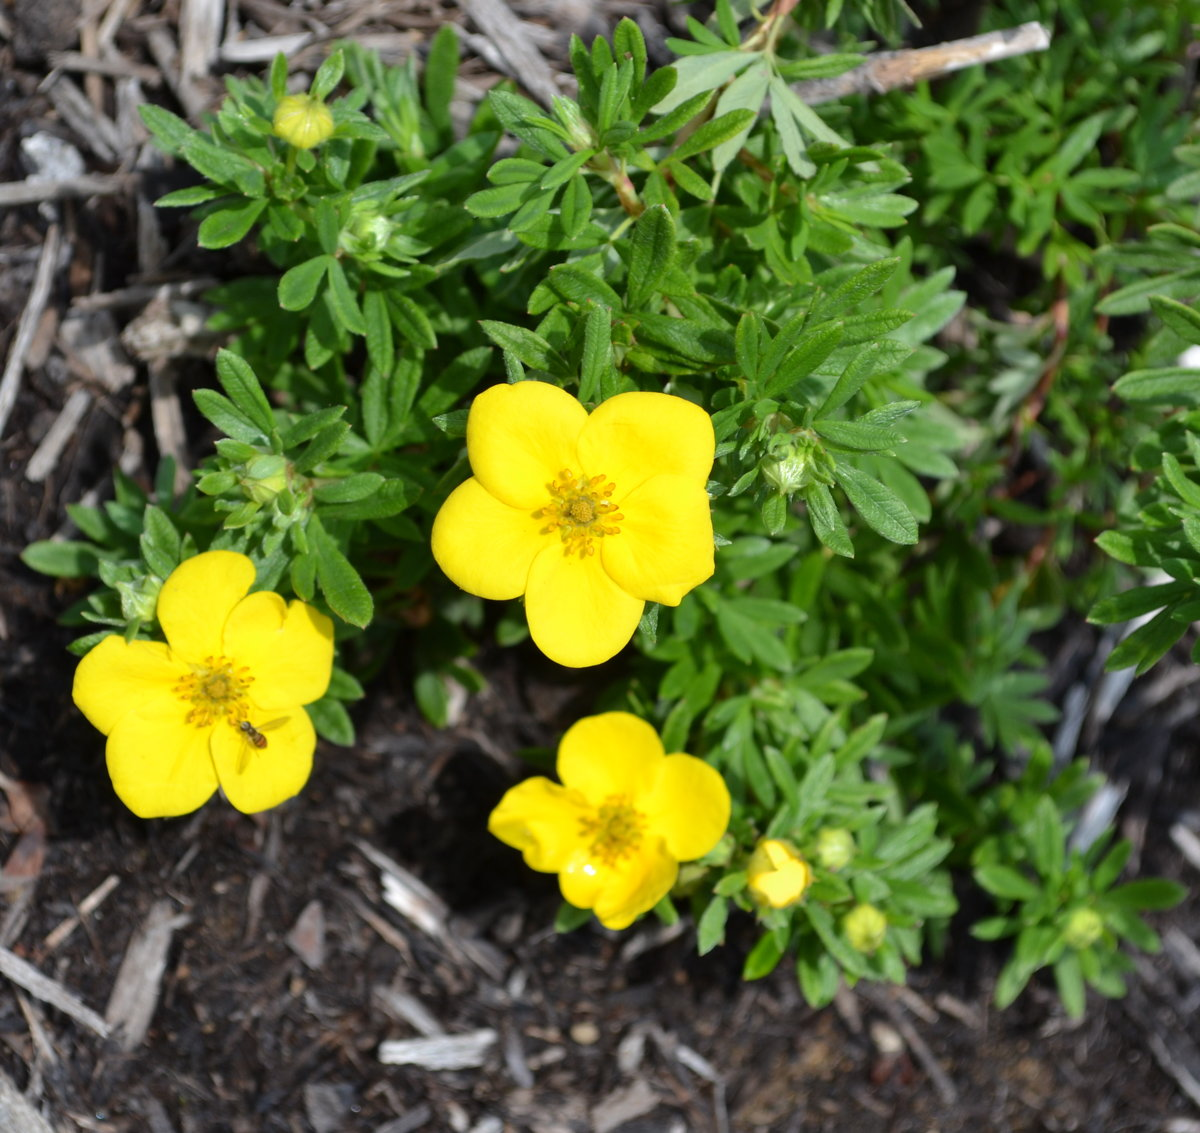 Gold Drop Potentilla.  Tough enough to make it through the winter?